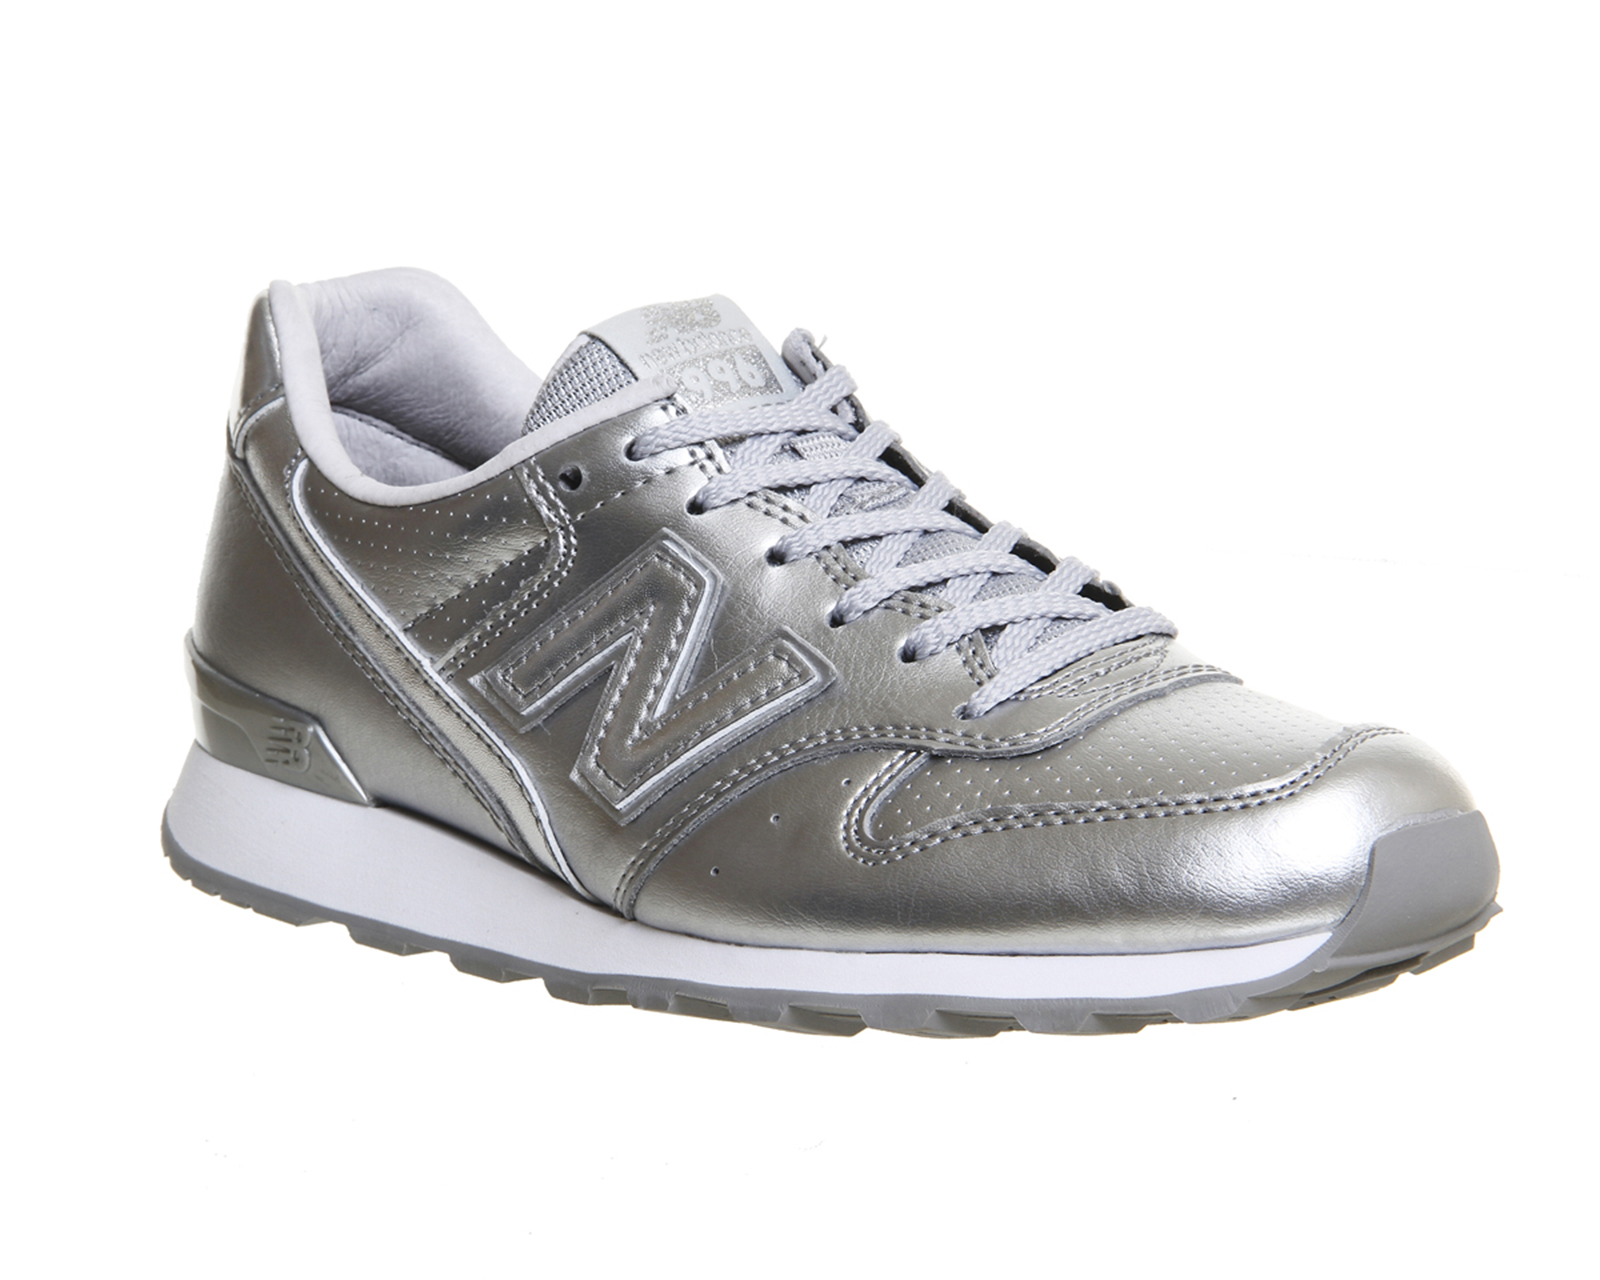 new balance 996 silver mono trainers shoes ebay. Black Bedroom Furniture Sets. Home Design Ideas